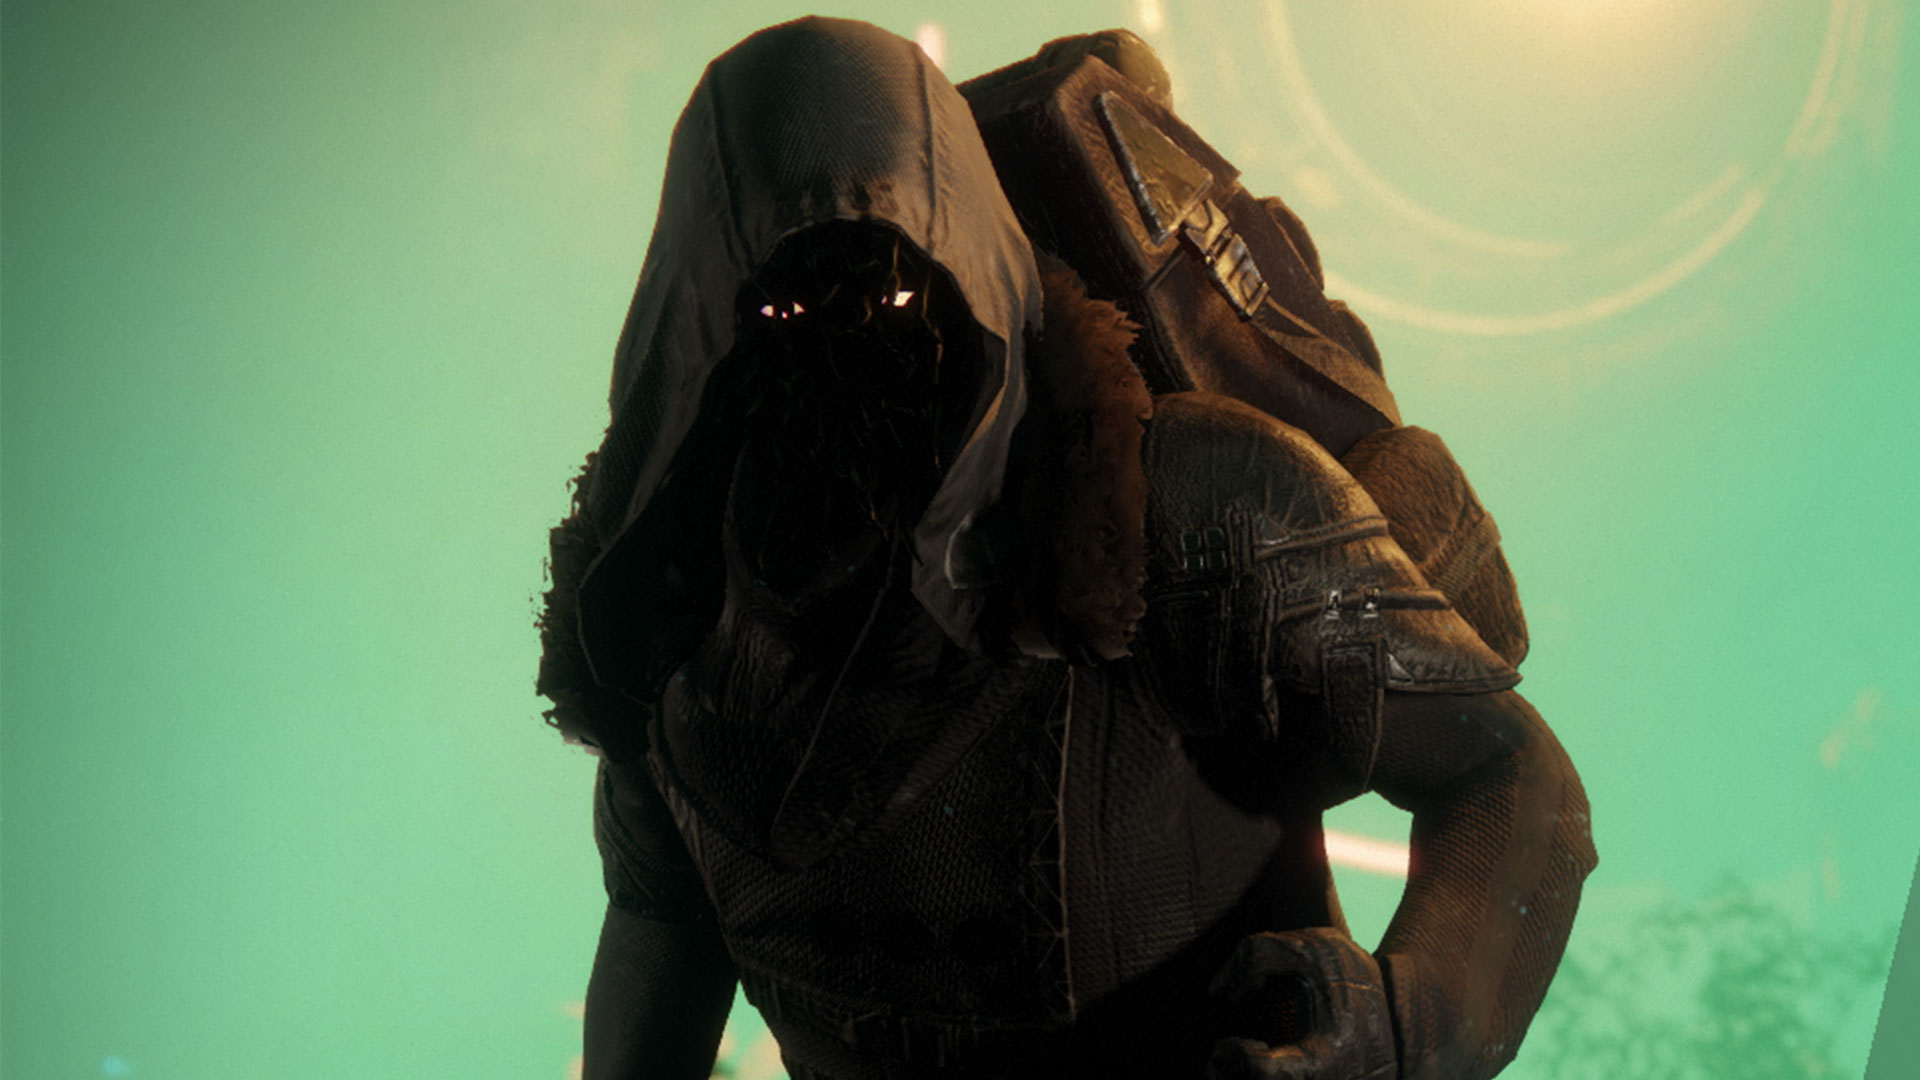 Destiny 2 Xur location and items, Aug. 16-20